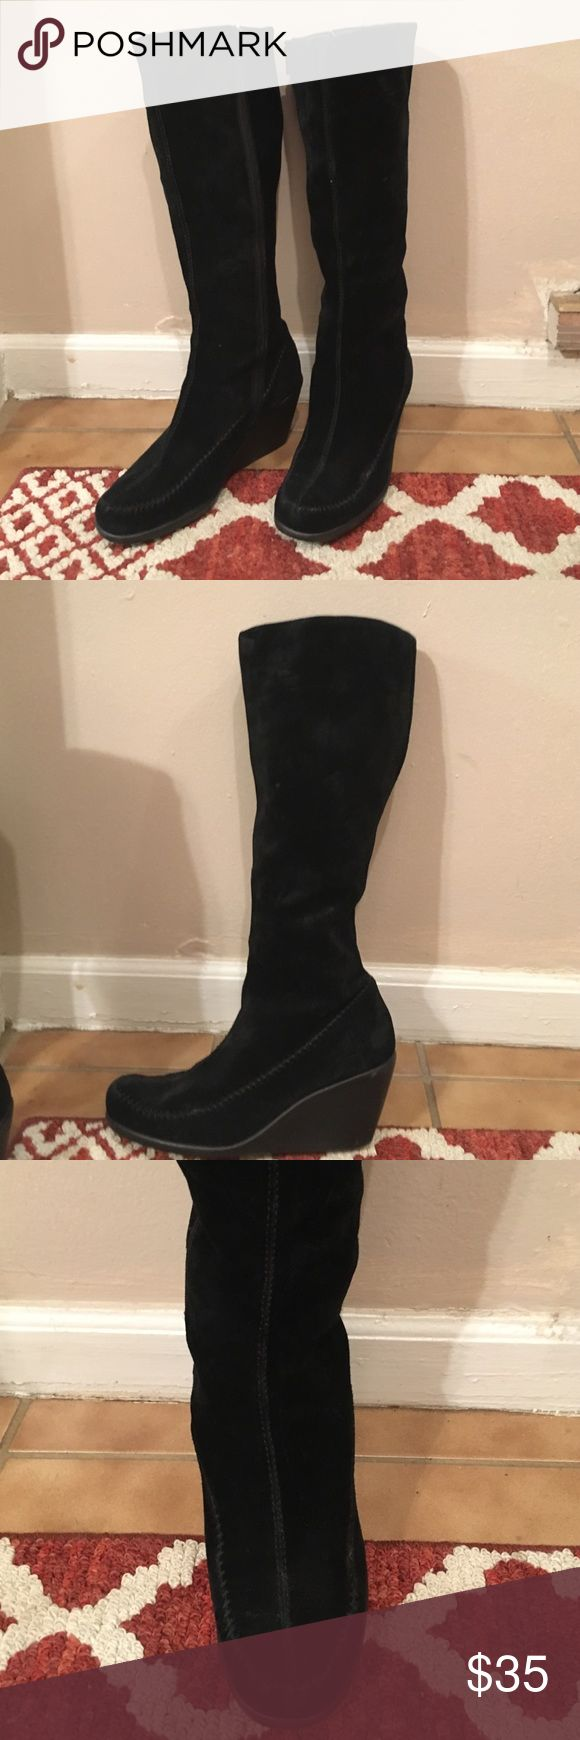 Black Suede Wedge Boots Versatile black wedge boots by Aerosoles. These boots are made from very soft suede and are the most comfortable wedge boots I ever owned. I would always receive compliments when wearing them. They are in great pre-loved condition. These boots still have many more miles in them! AEROSOLES Shoes Wedges